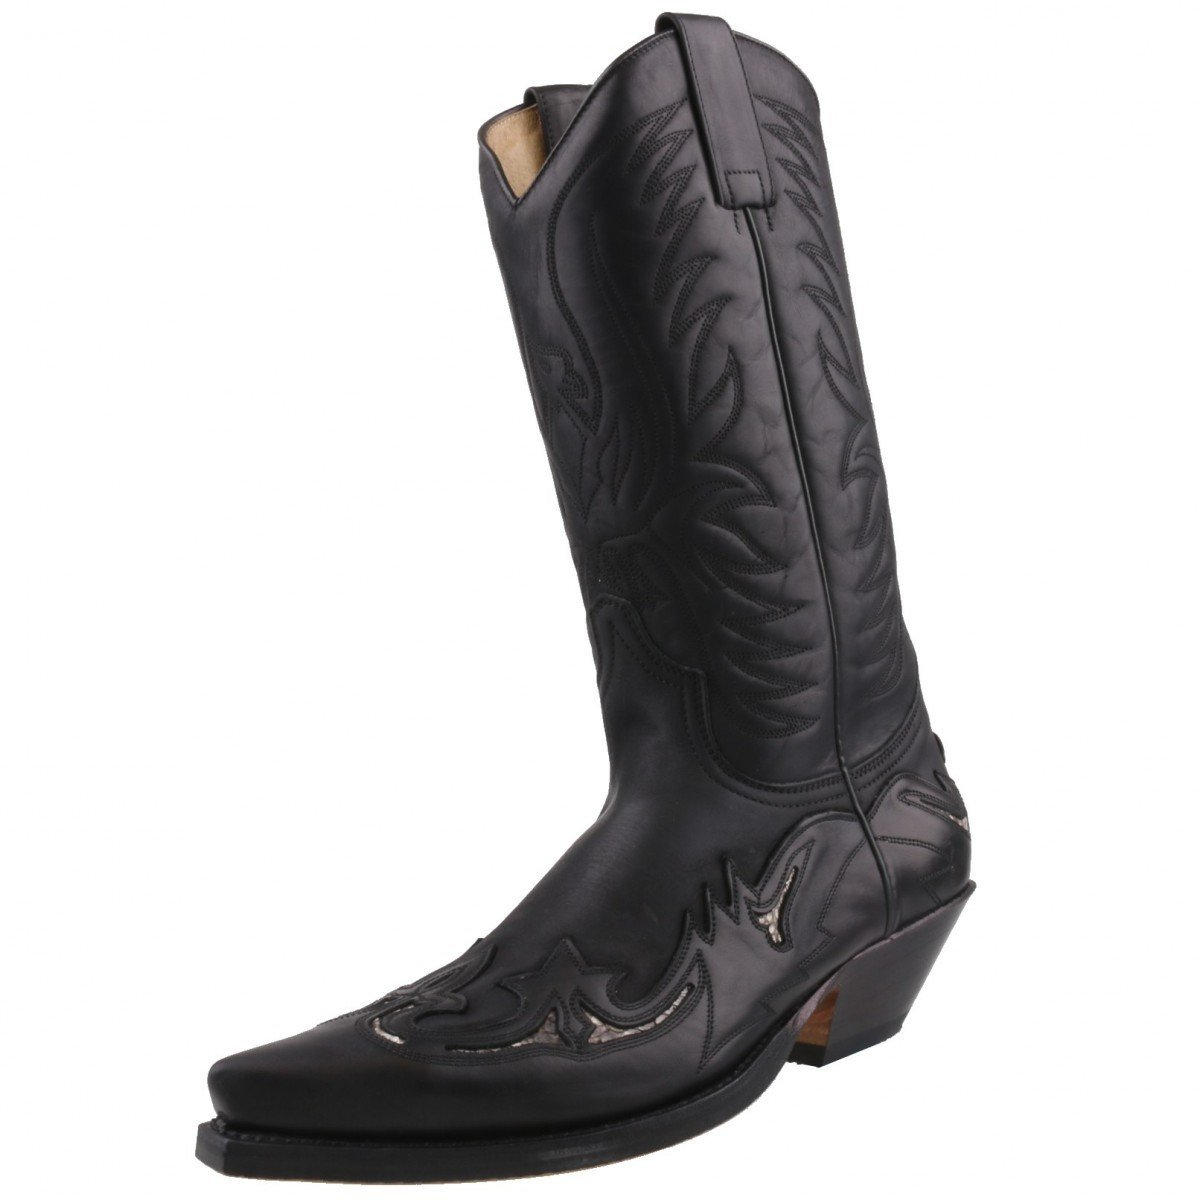 7b1f2984d71c3 Sendra 3242 Cowboy Boots Black Leather Real Python Details Western Biker  Handmade Unisex  Amazon.co.uk  Shoes   Bags